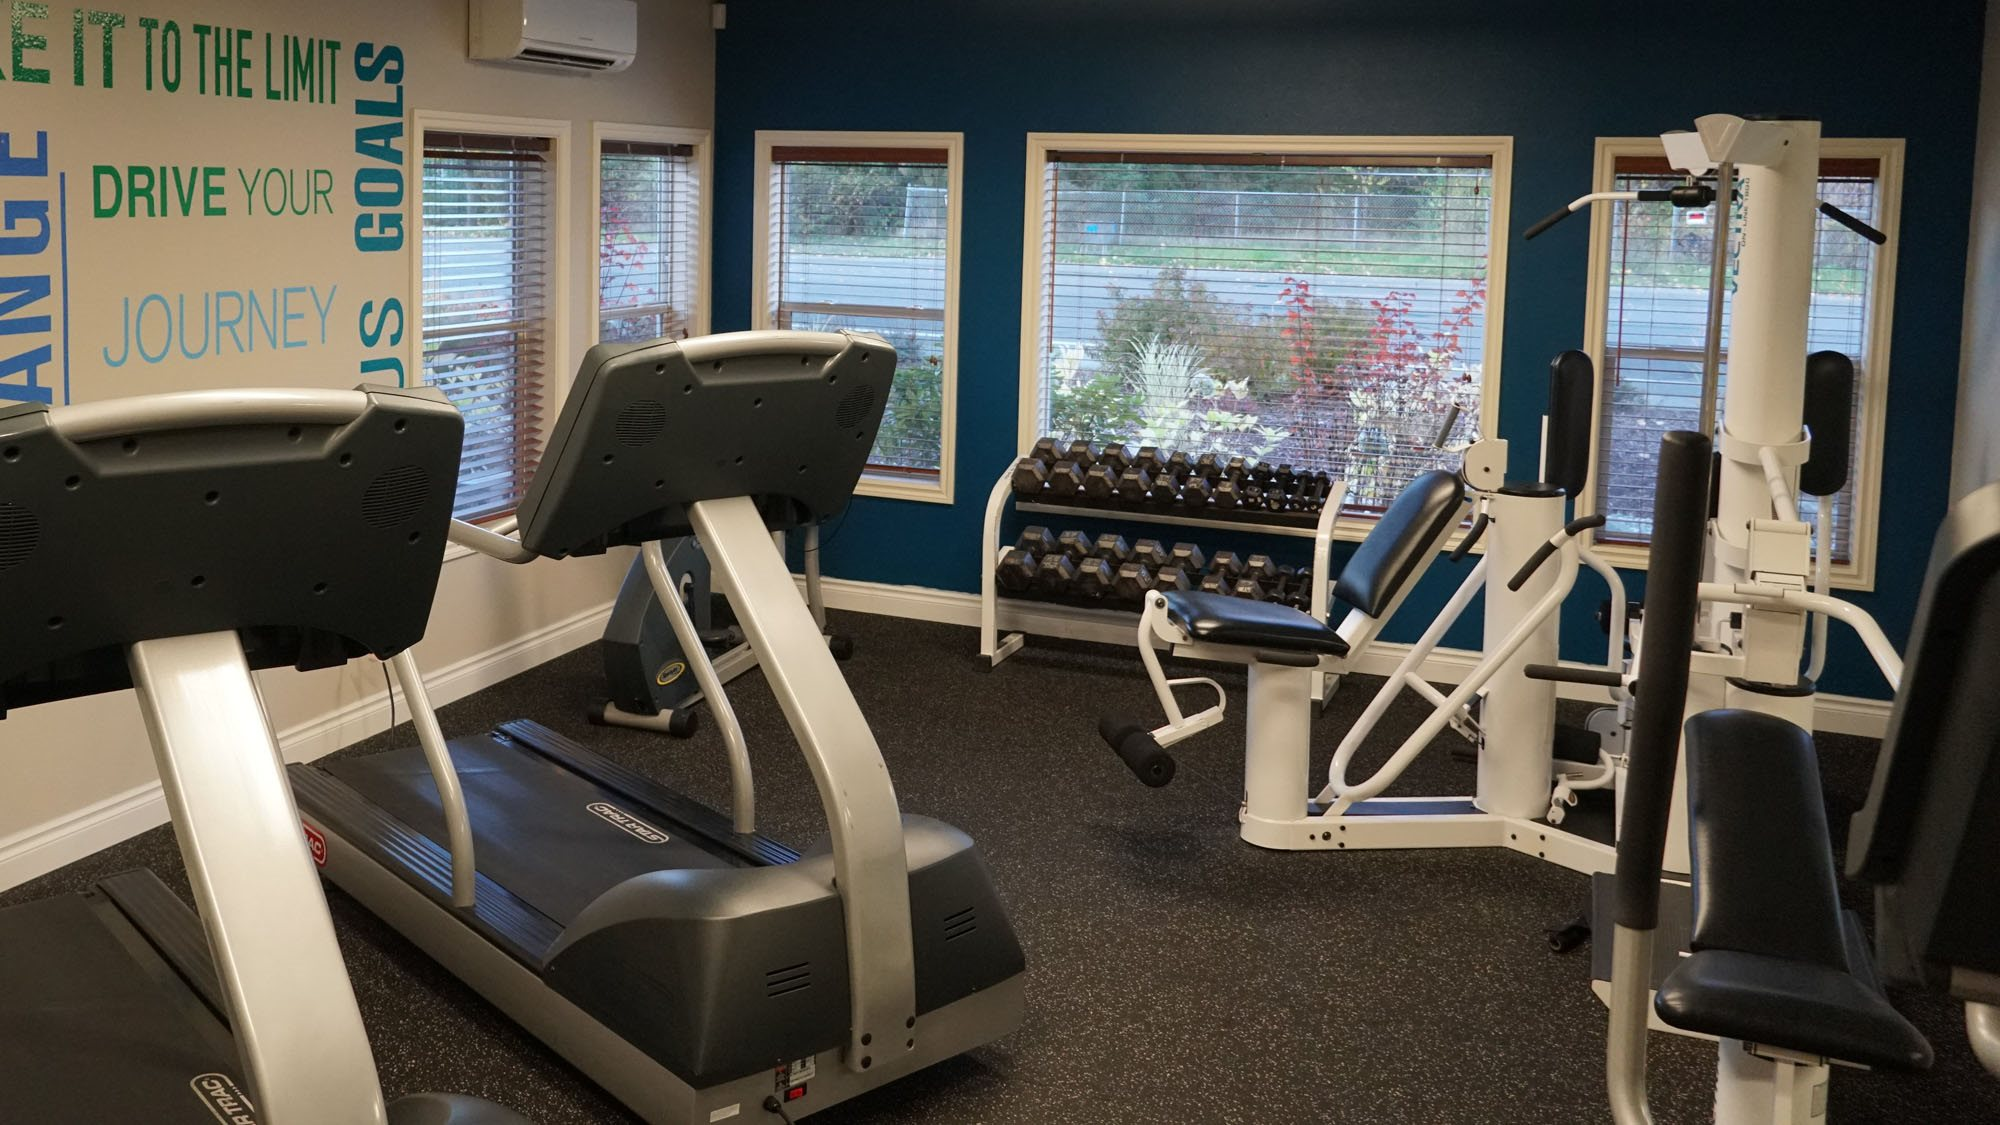 fitness center- cardio machines, weighted machines, free weights